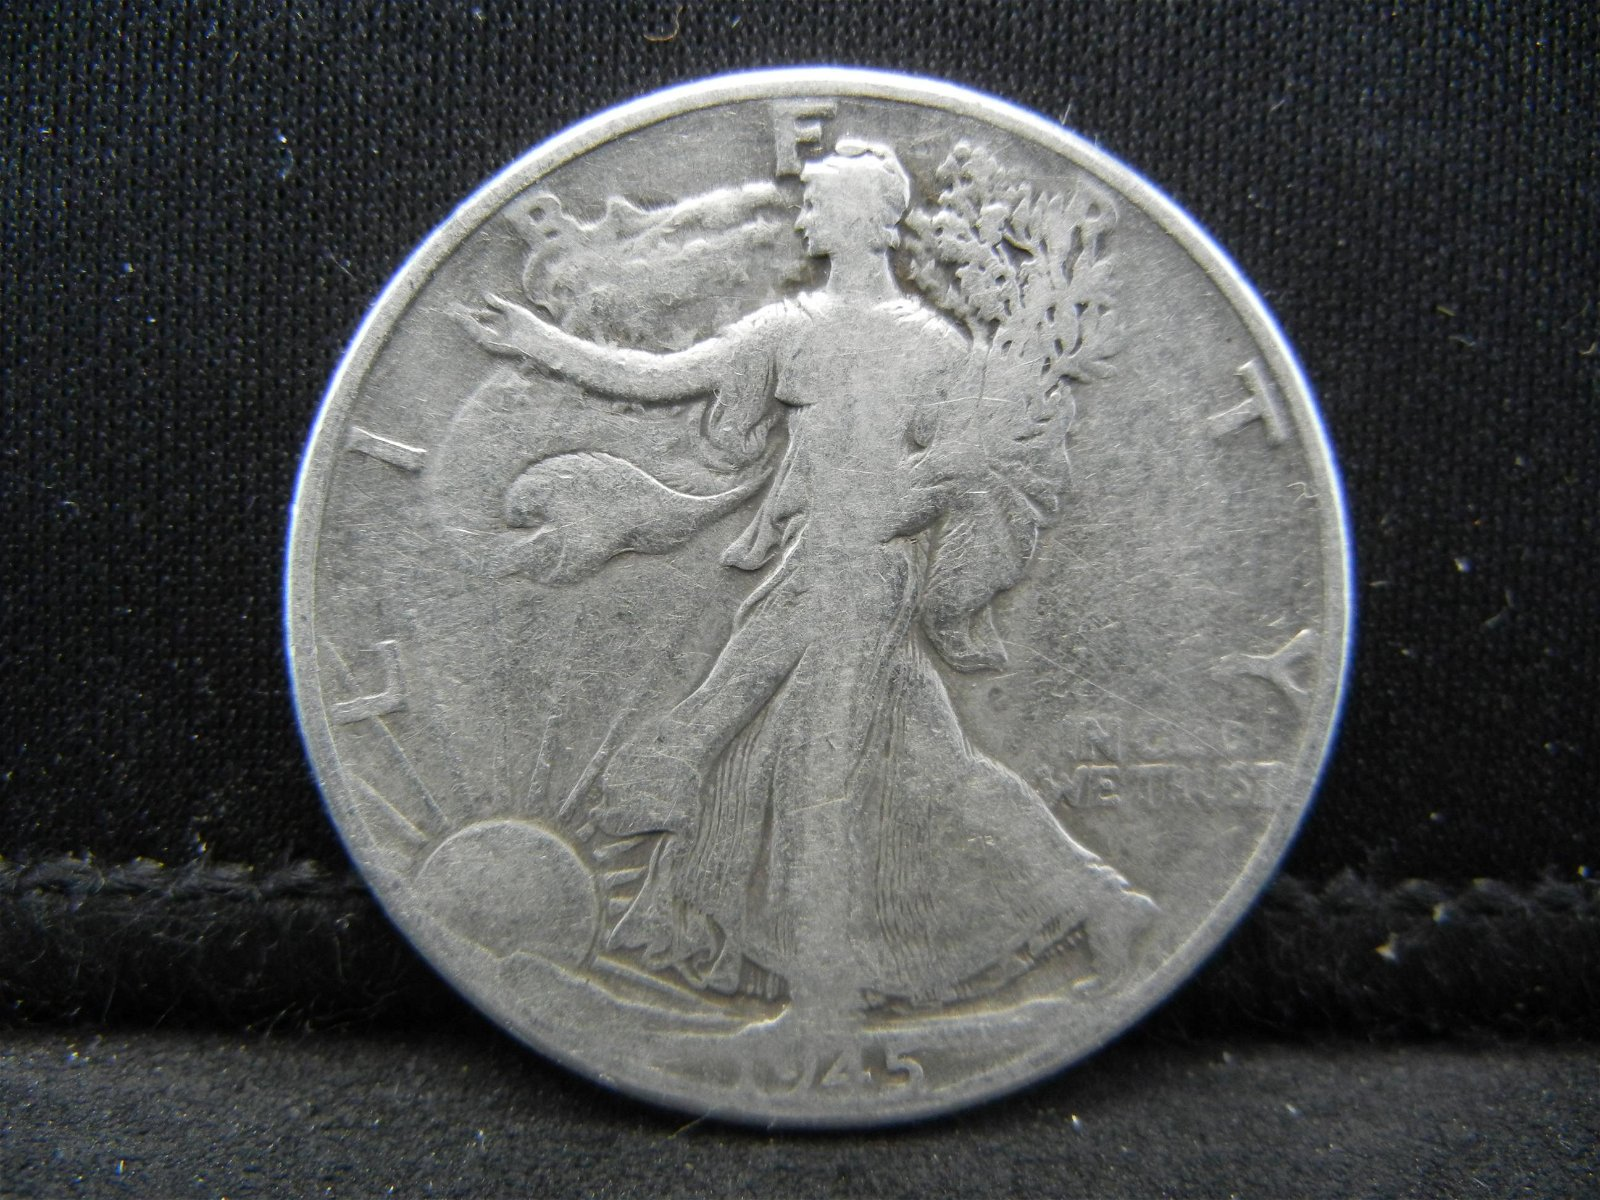 1945 SILVER (90%) LIBERTY HALF, WWII ERA, 74 YRS OLD,